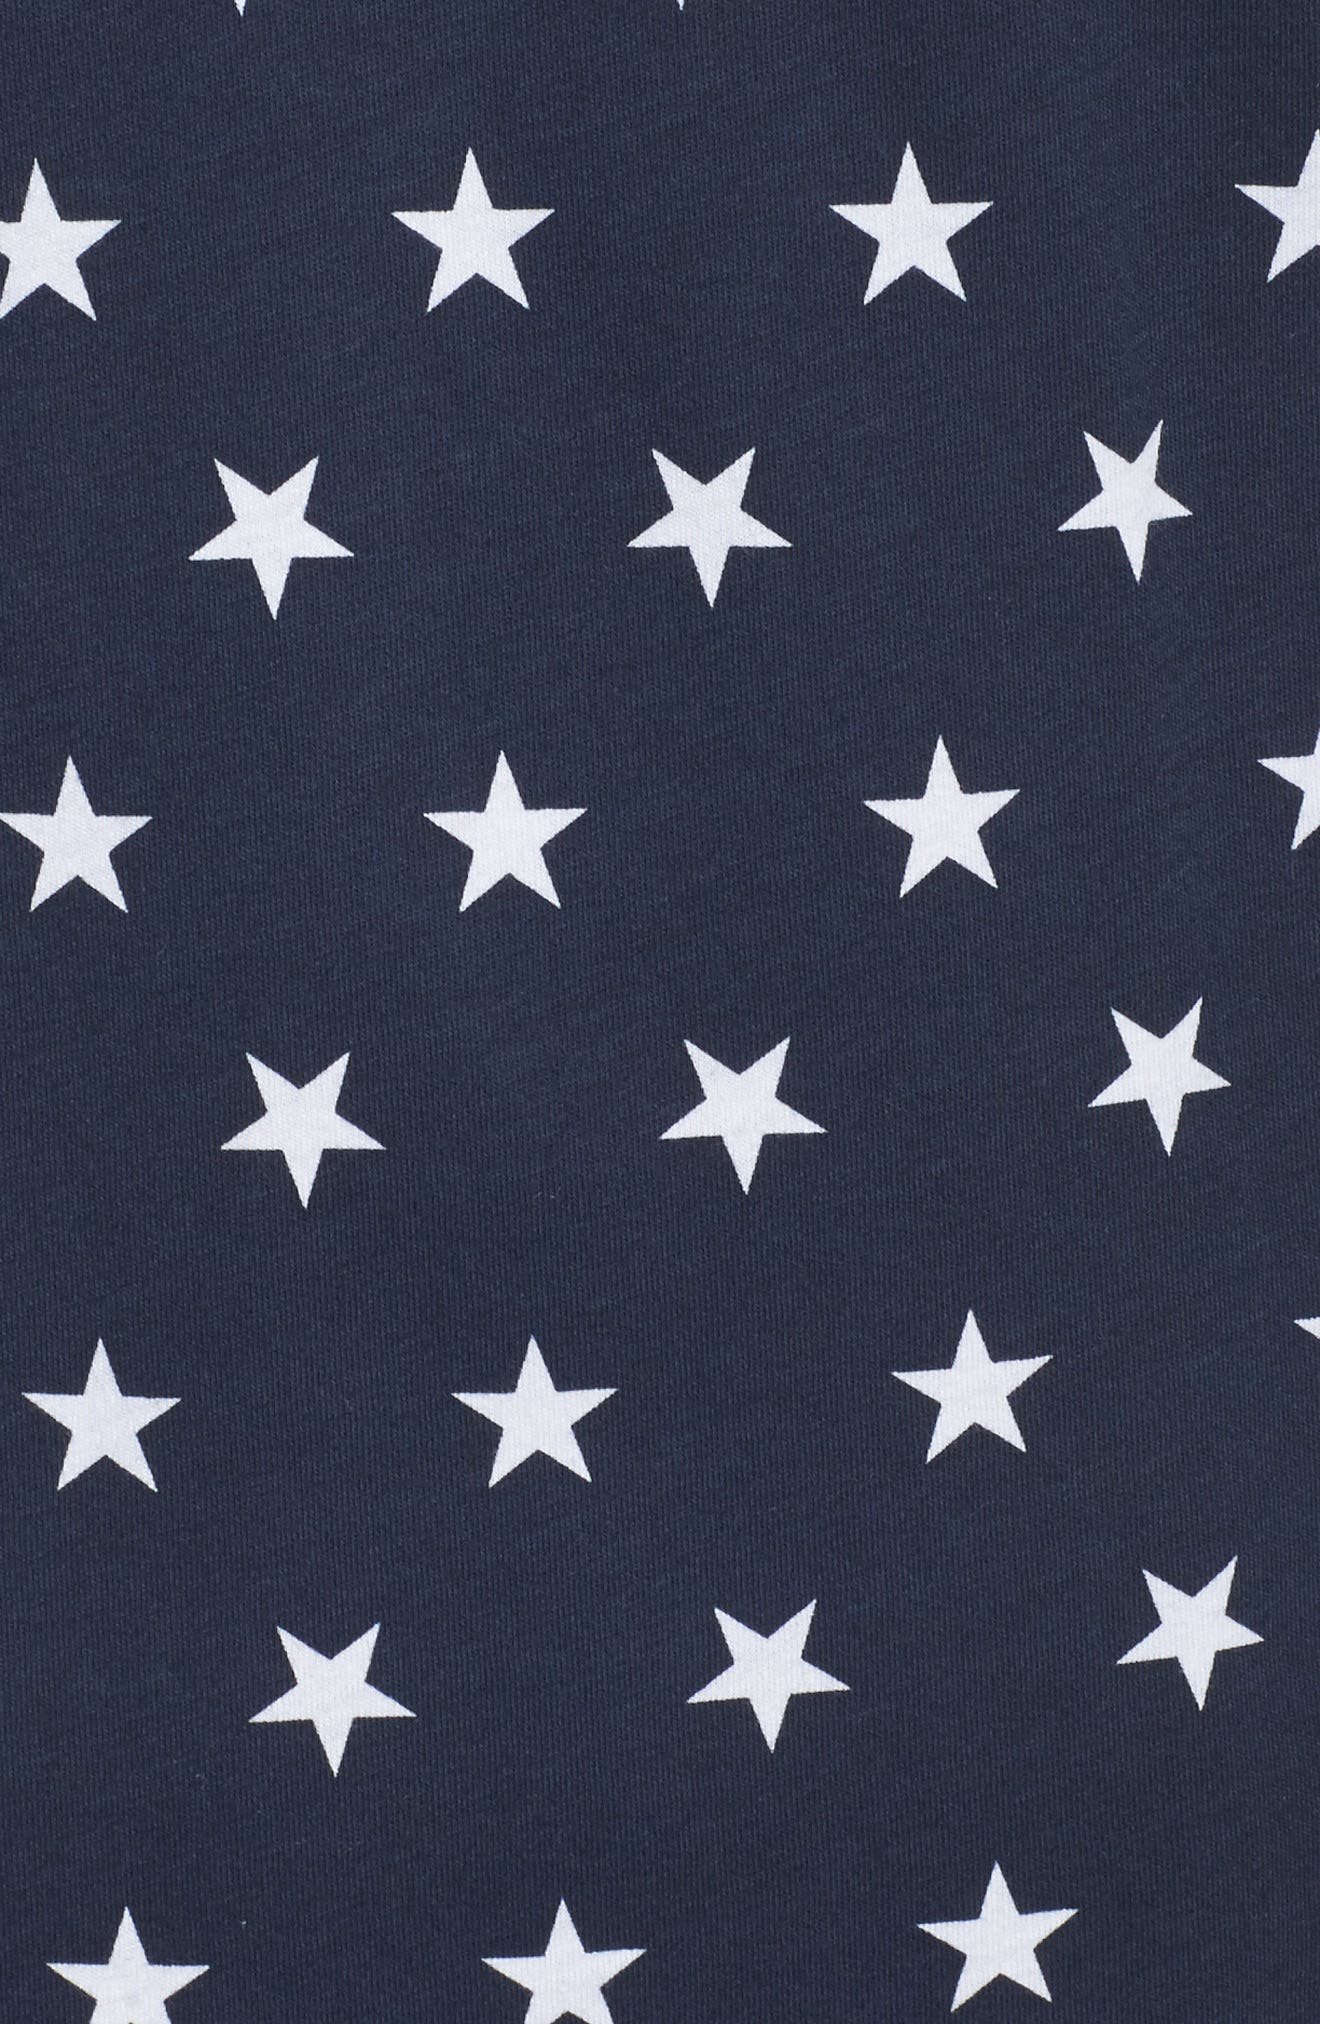 International Collection Tee,                             Alternate thumbnail 6, color,                             Cosmic Blue Star Print